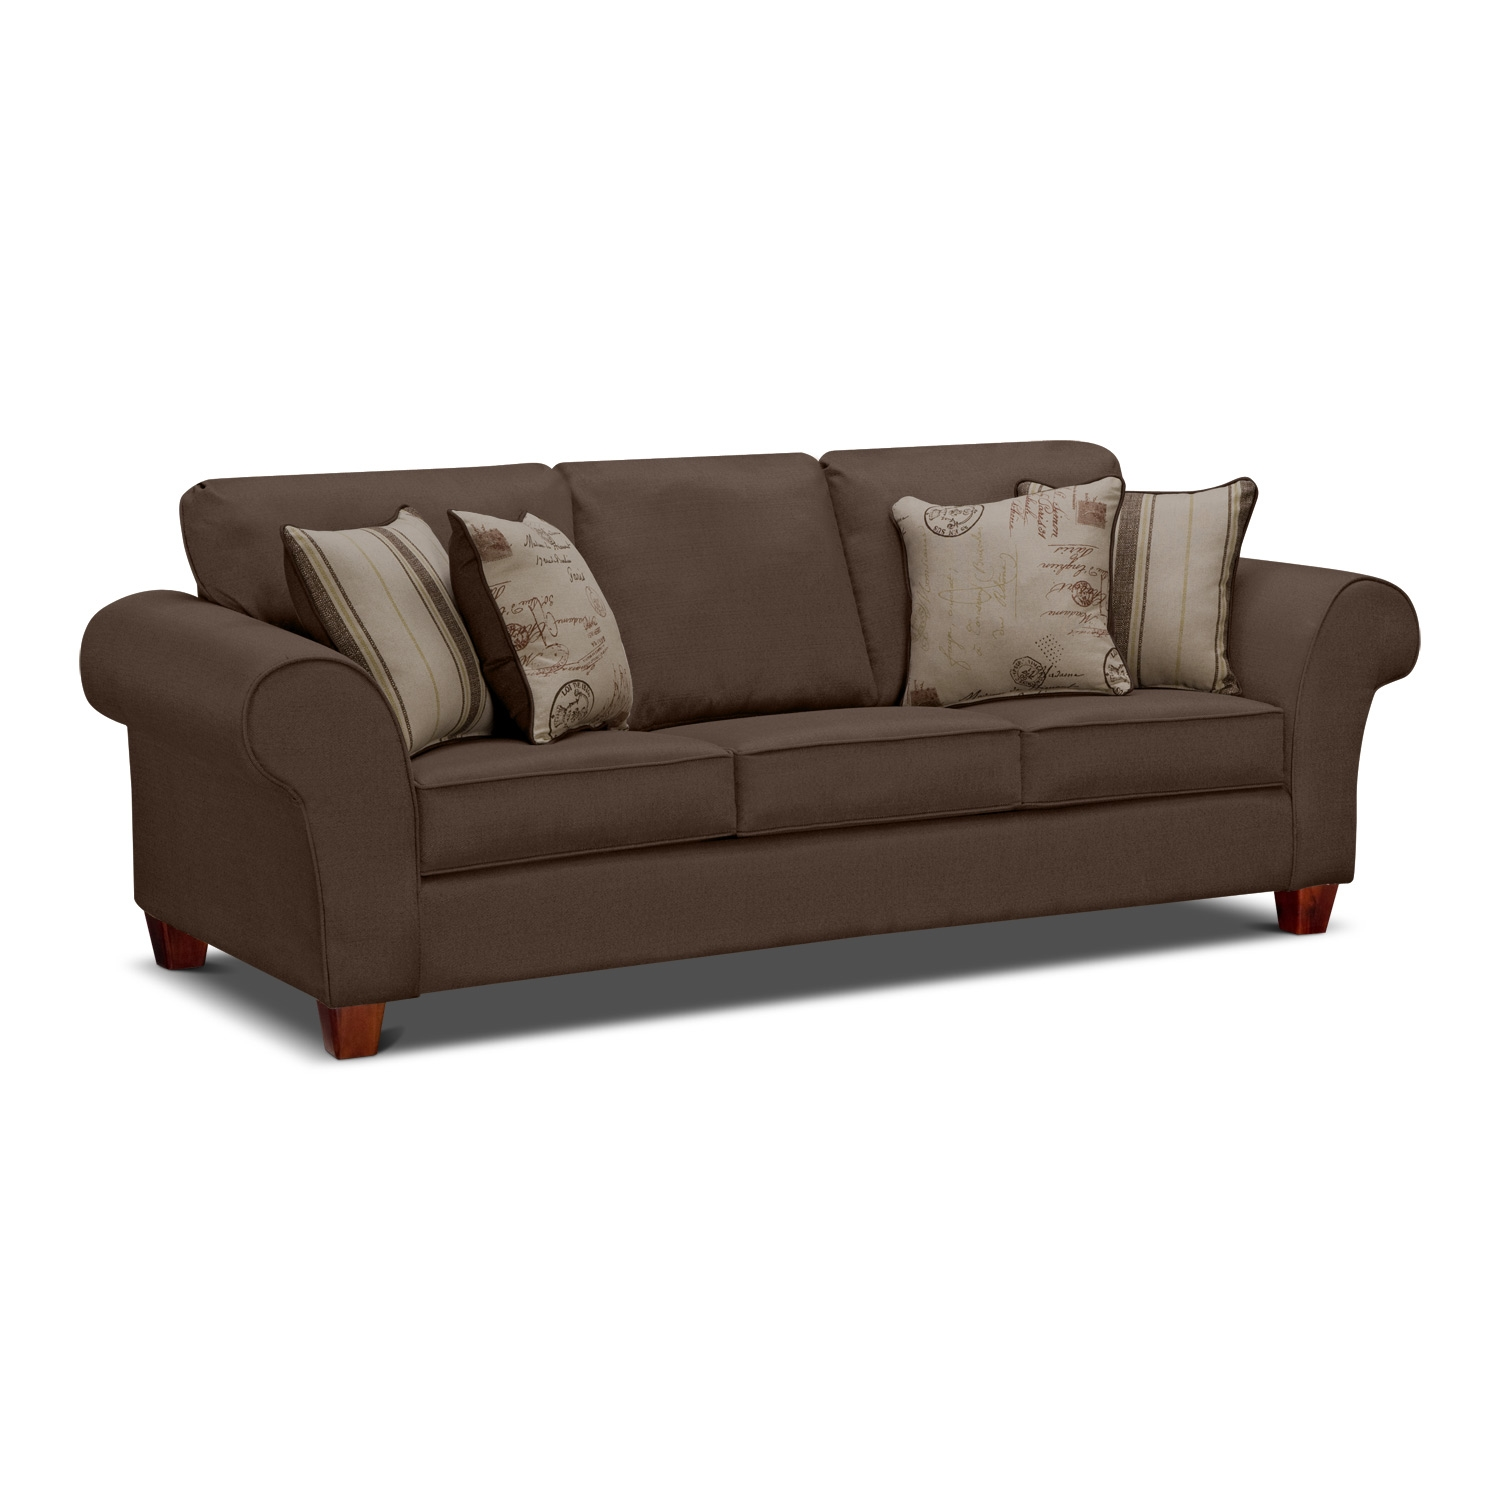 Sofas on sale ikea couch sofa ideas interior design for Best place for inexpensive furniture